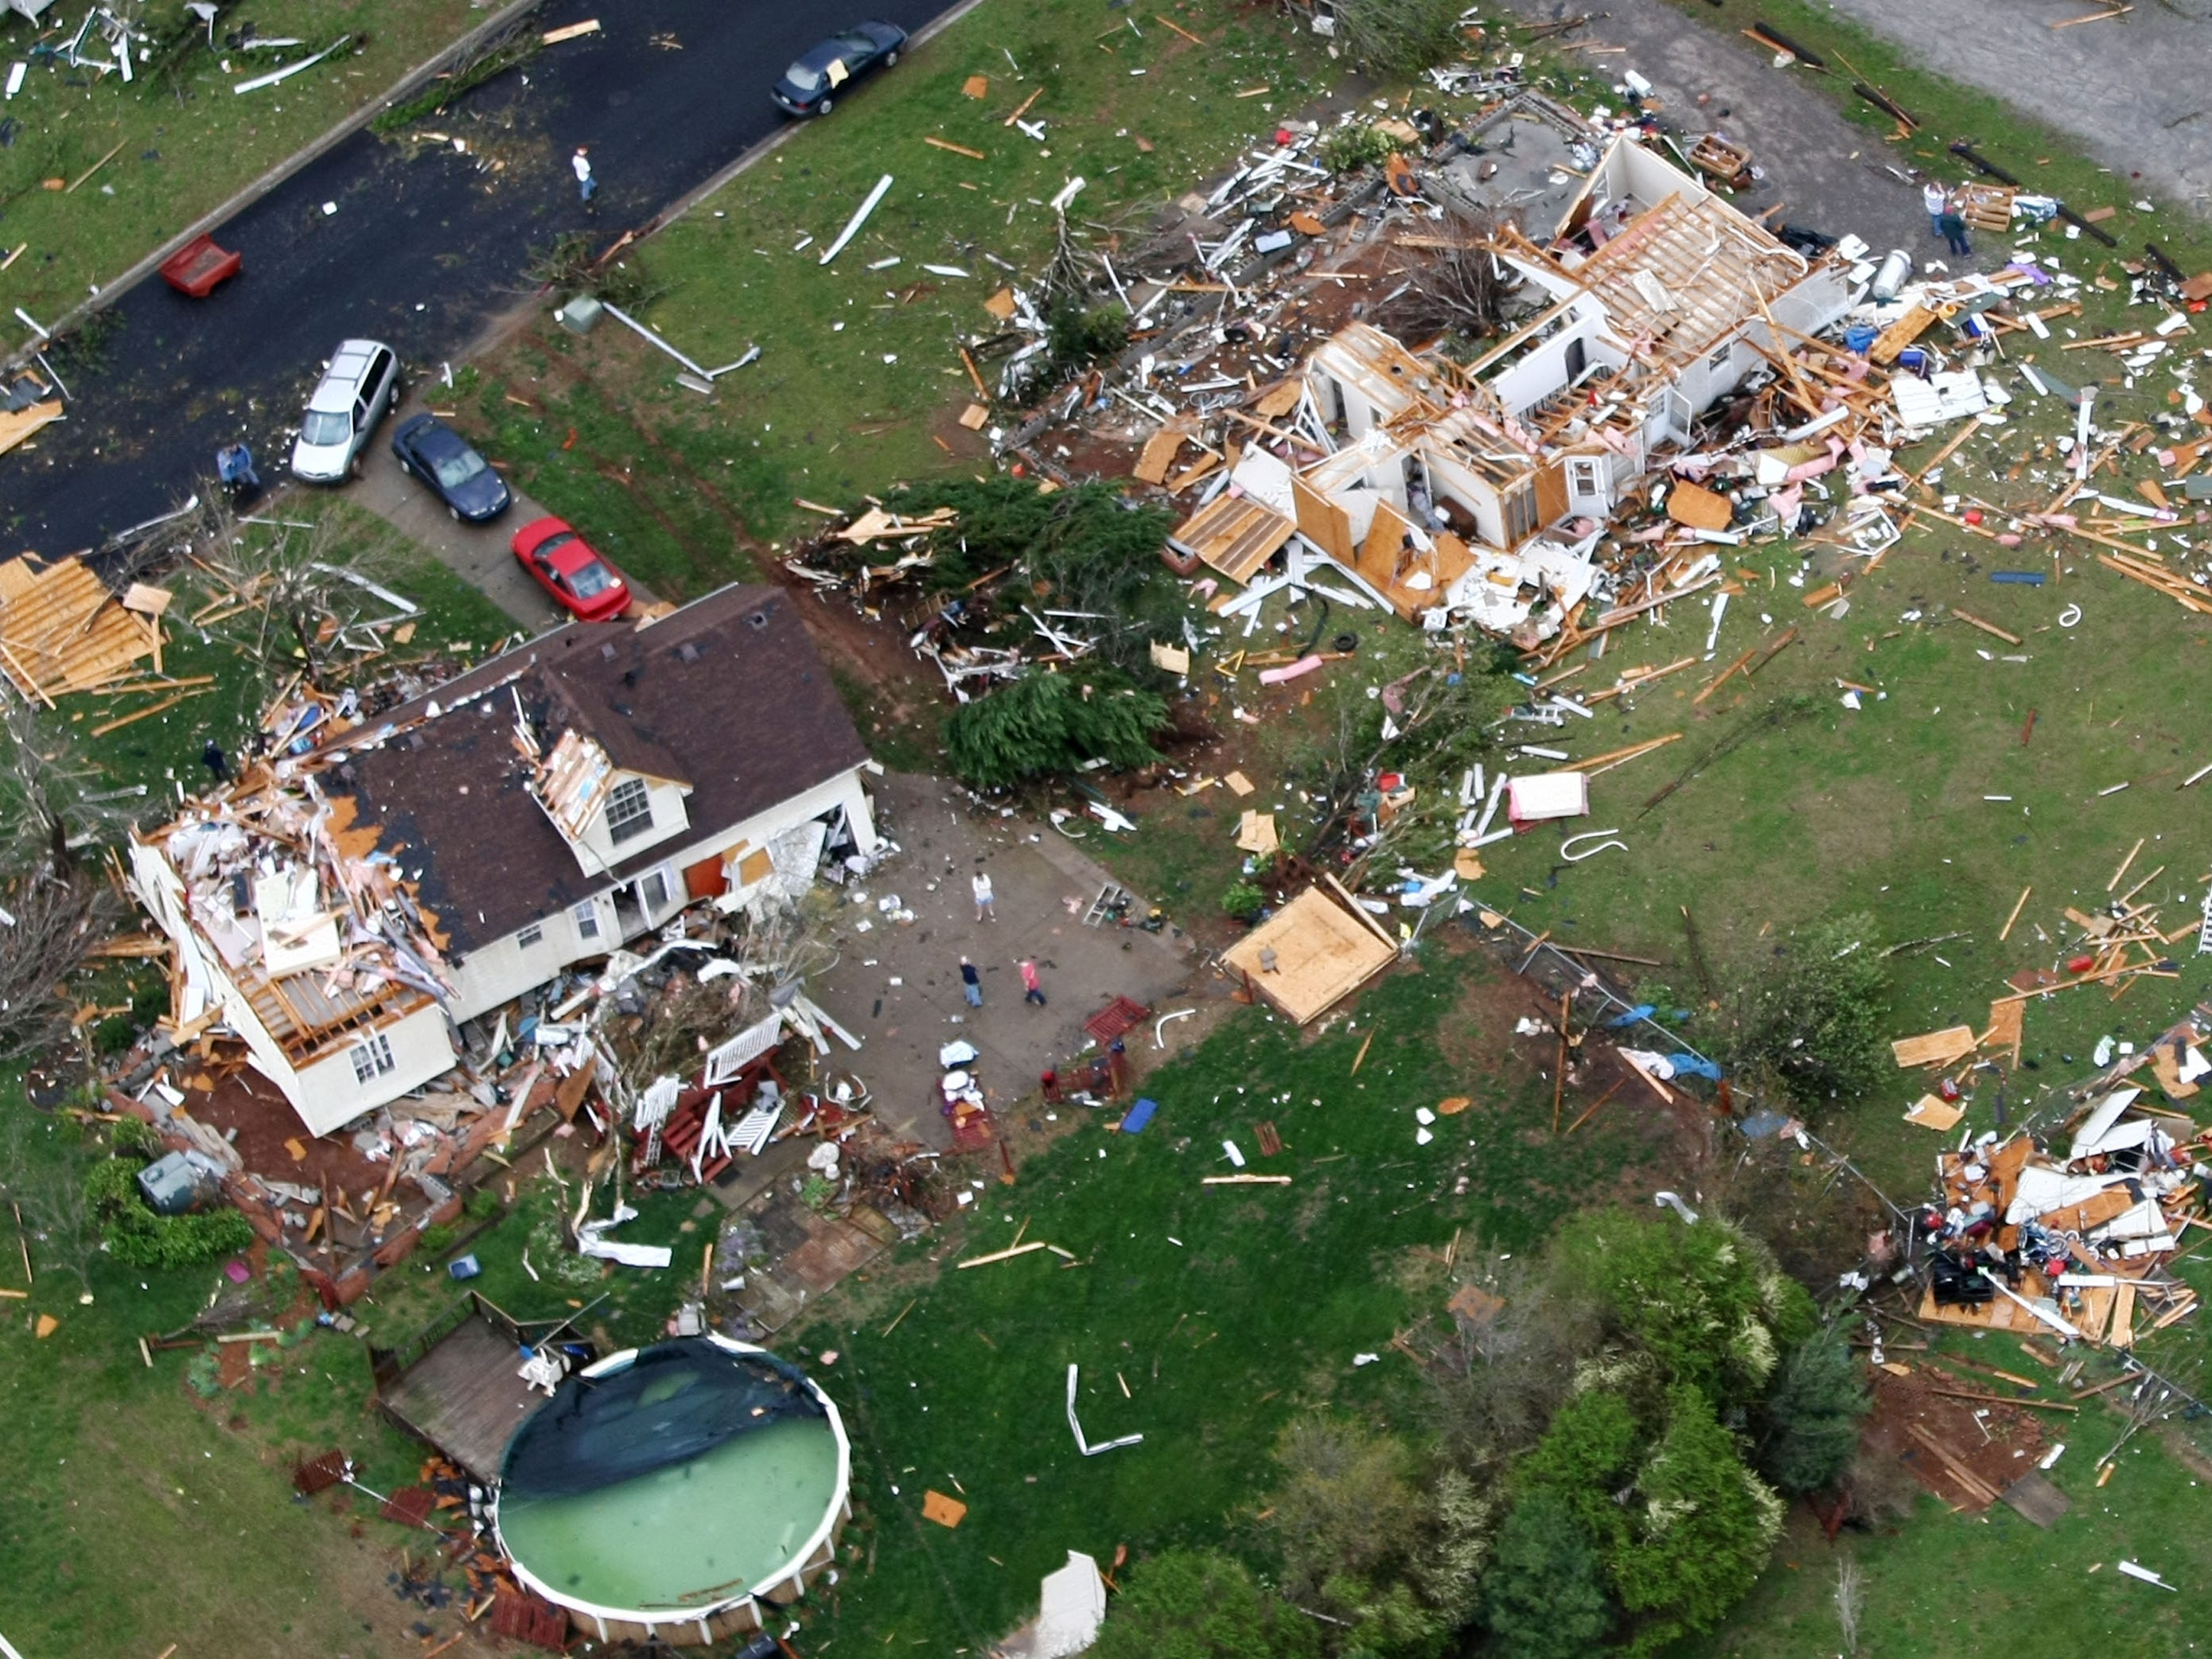 This aerial view of the D'Ann Drive home of Mike and Teresa Bickford shows how the house shifted off the foundation during the Good Friday tornado on April 10, 2009. Their son, Sam, broke his finger trying to close the door as the EF-4 tornado tore through their home.